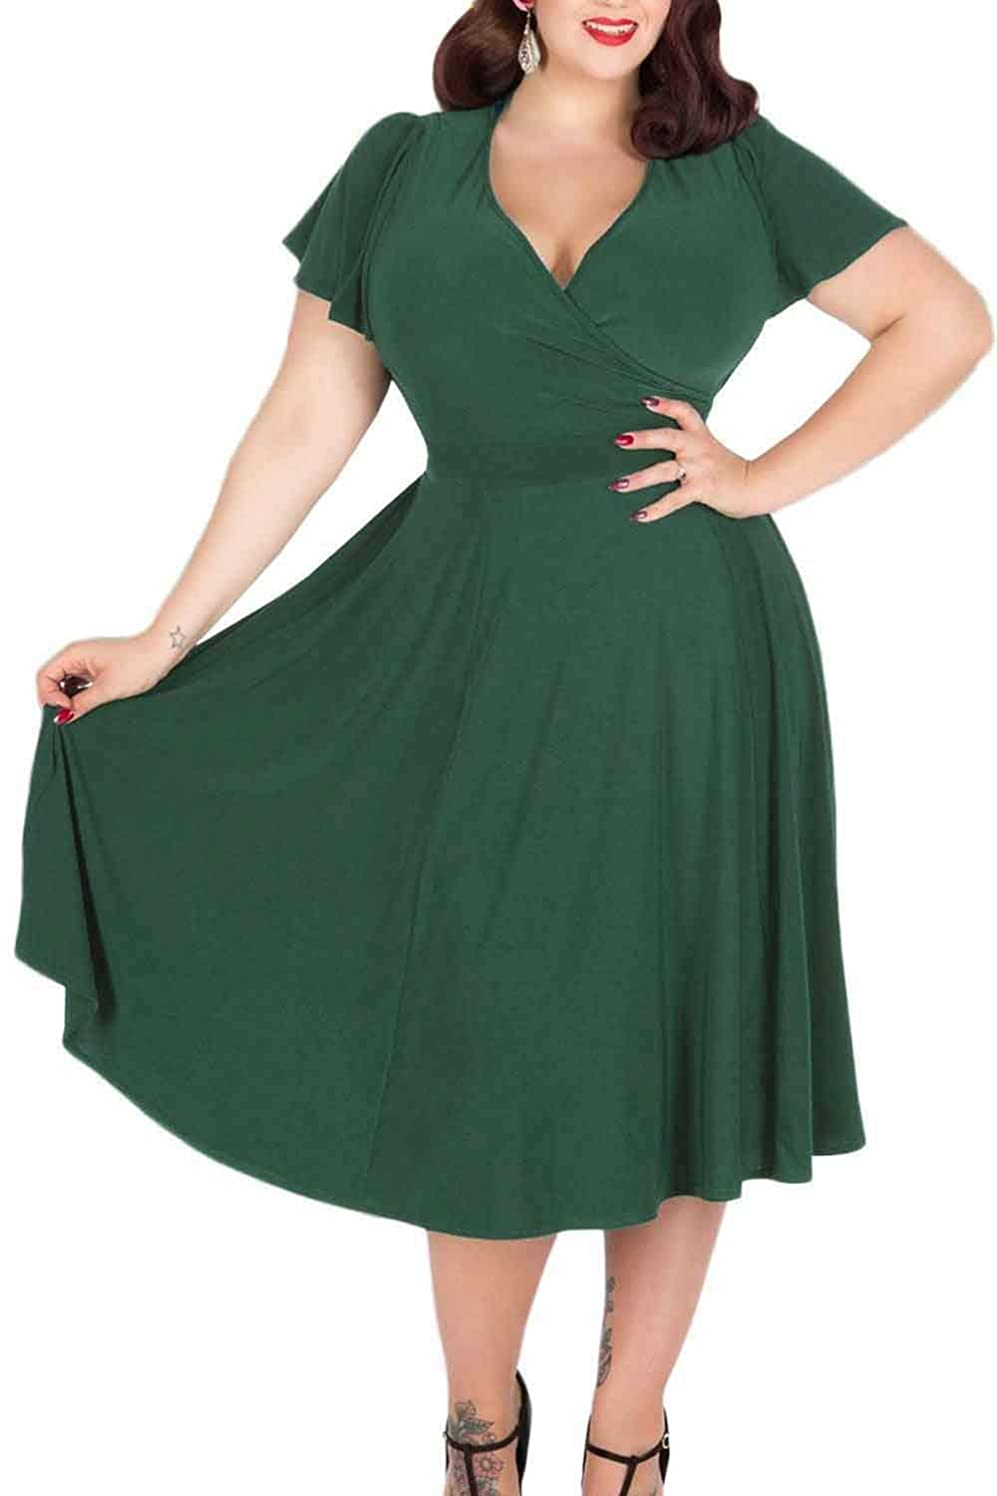 Roseinthebox Women Maxi Wrap V Neck Stretchy Casual Short Sleeve Swing Flowy Midi Plus Size Bridesmaid Party Dress